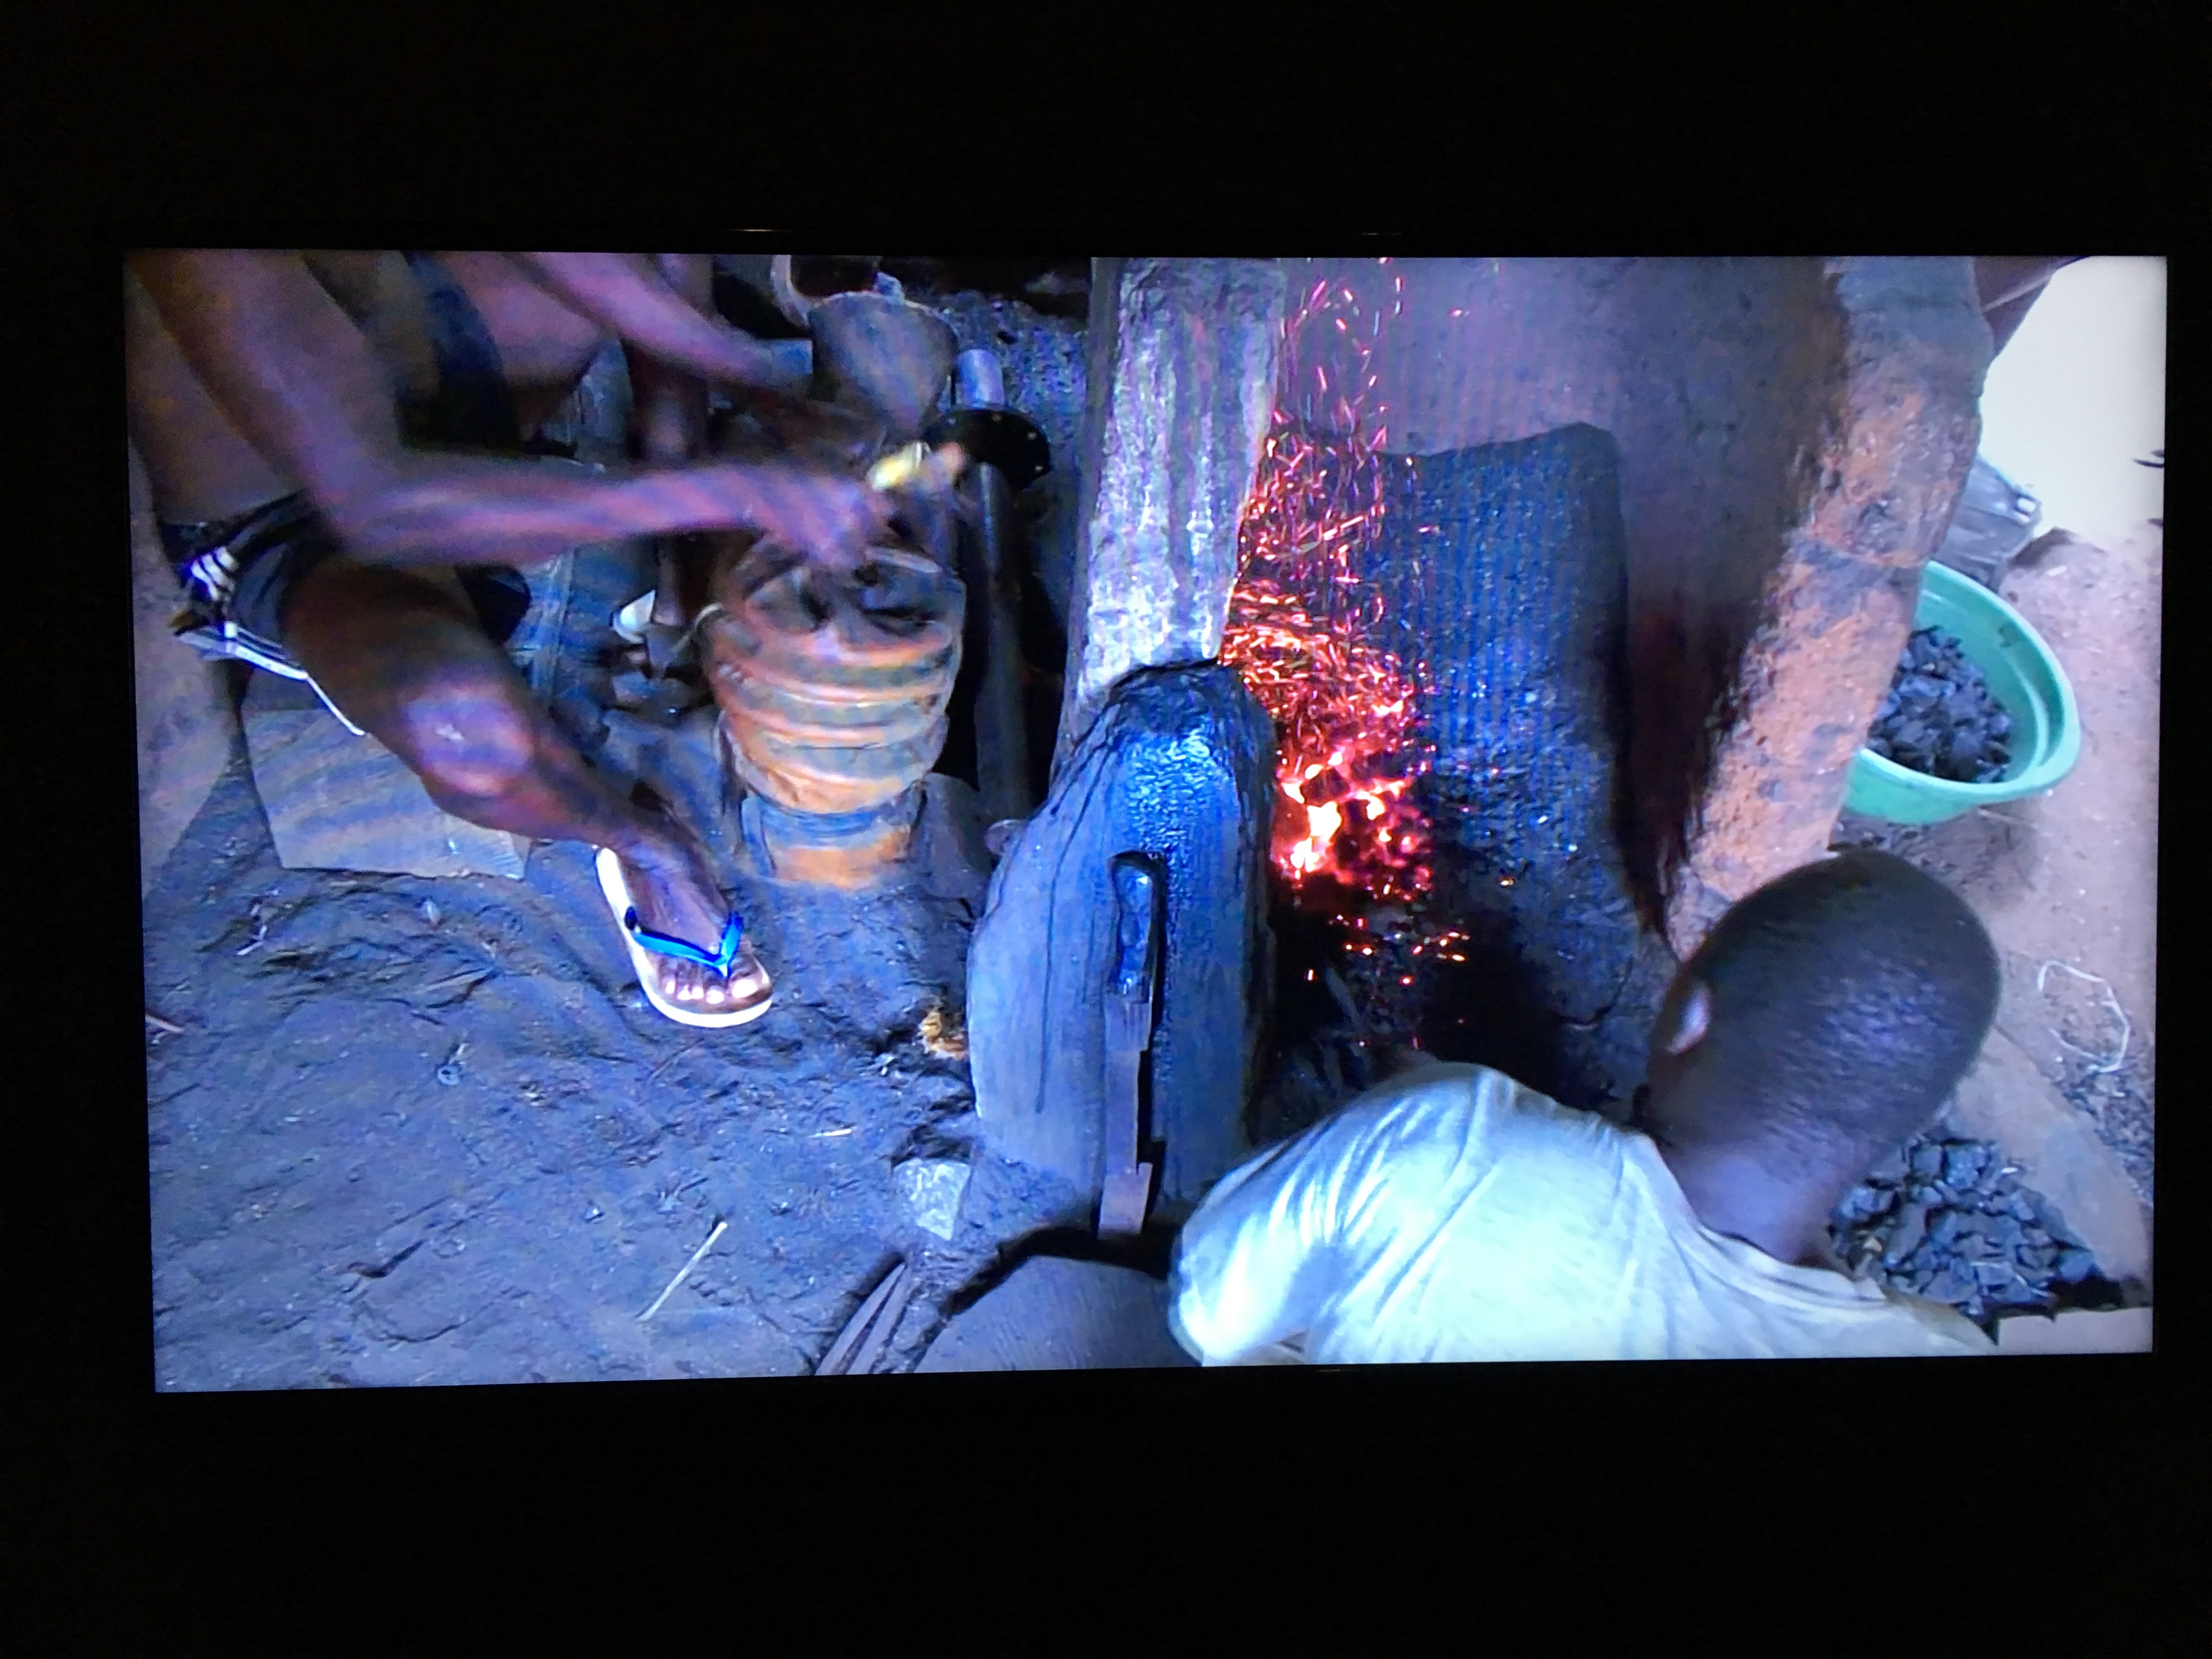 Still from Forging Video - The Blacksmith's Tools, narrated by lead curator Tom Joyce